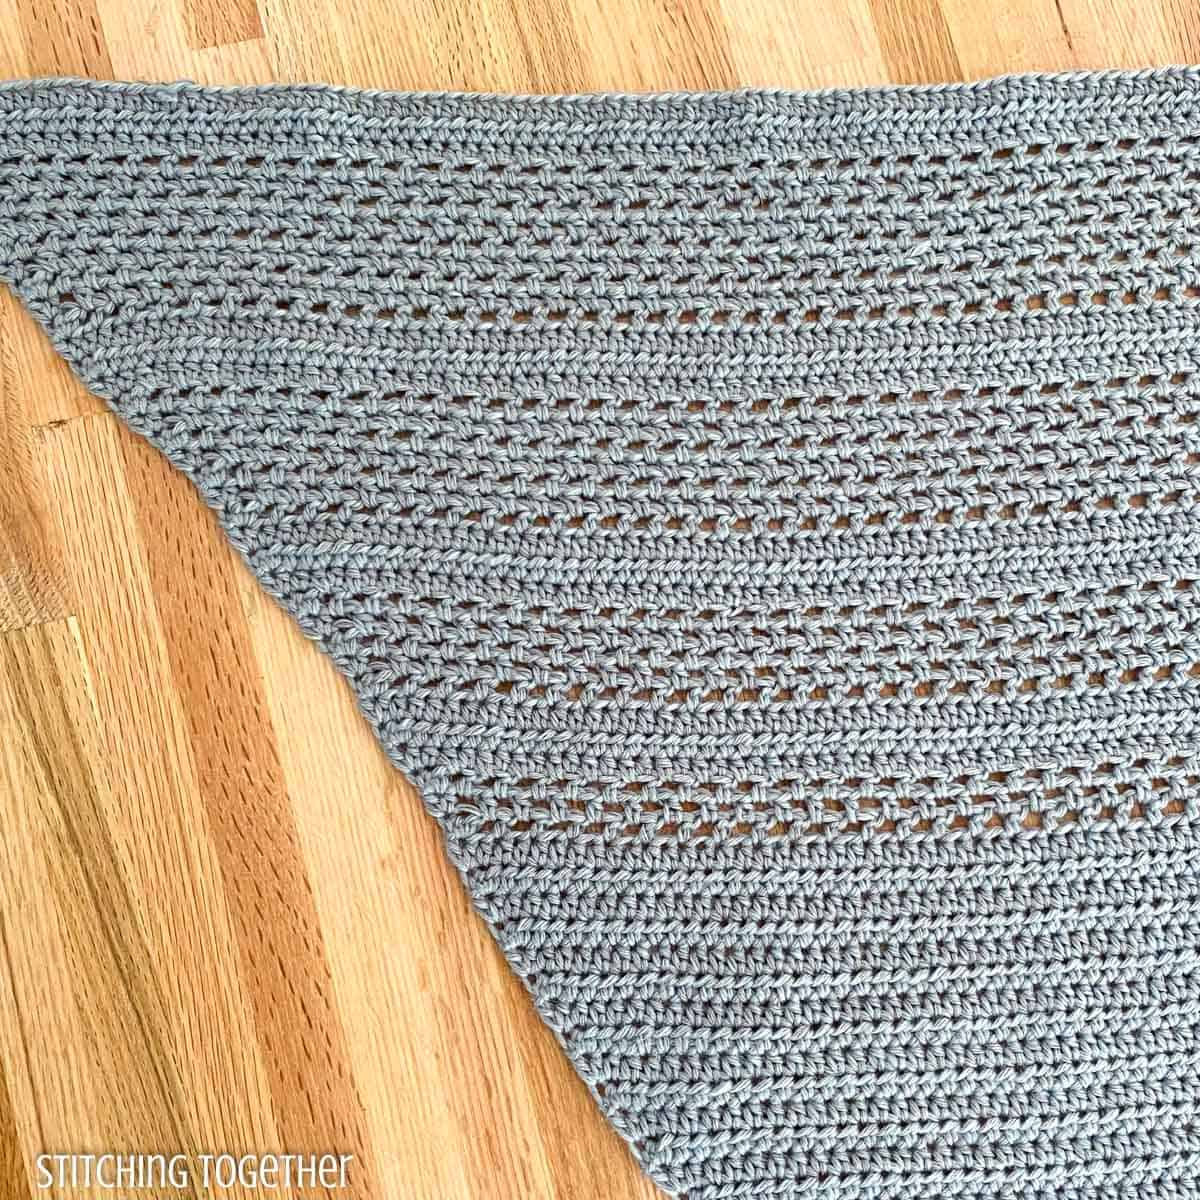 close up of crochet stitches in shawl